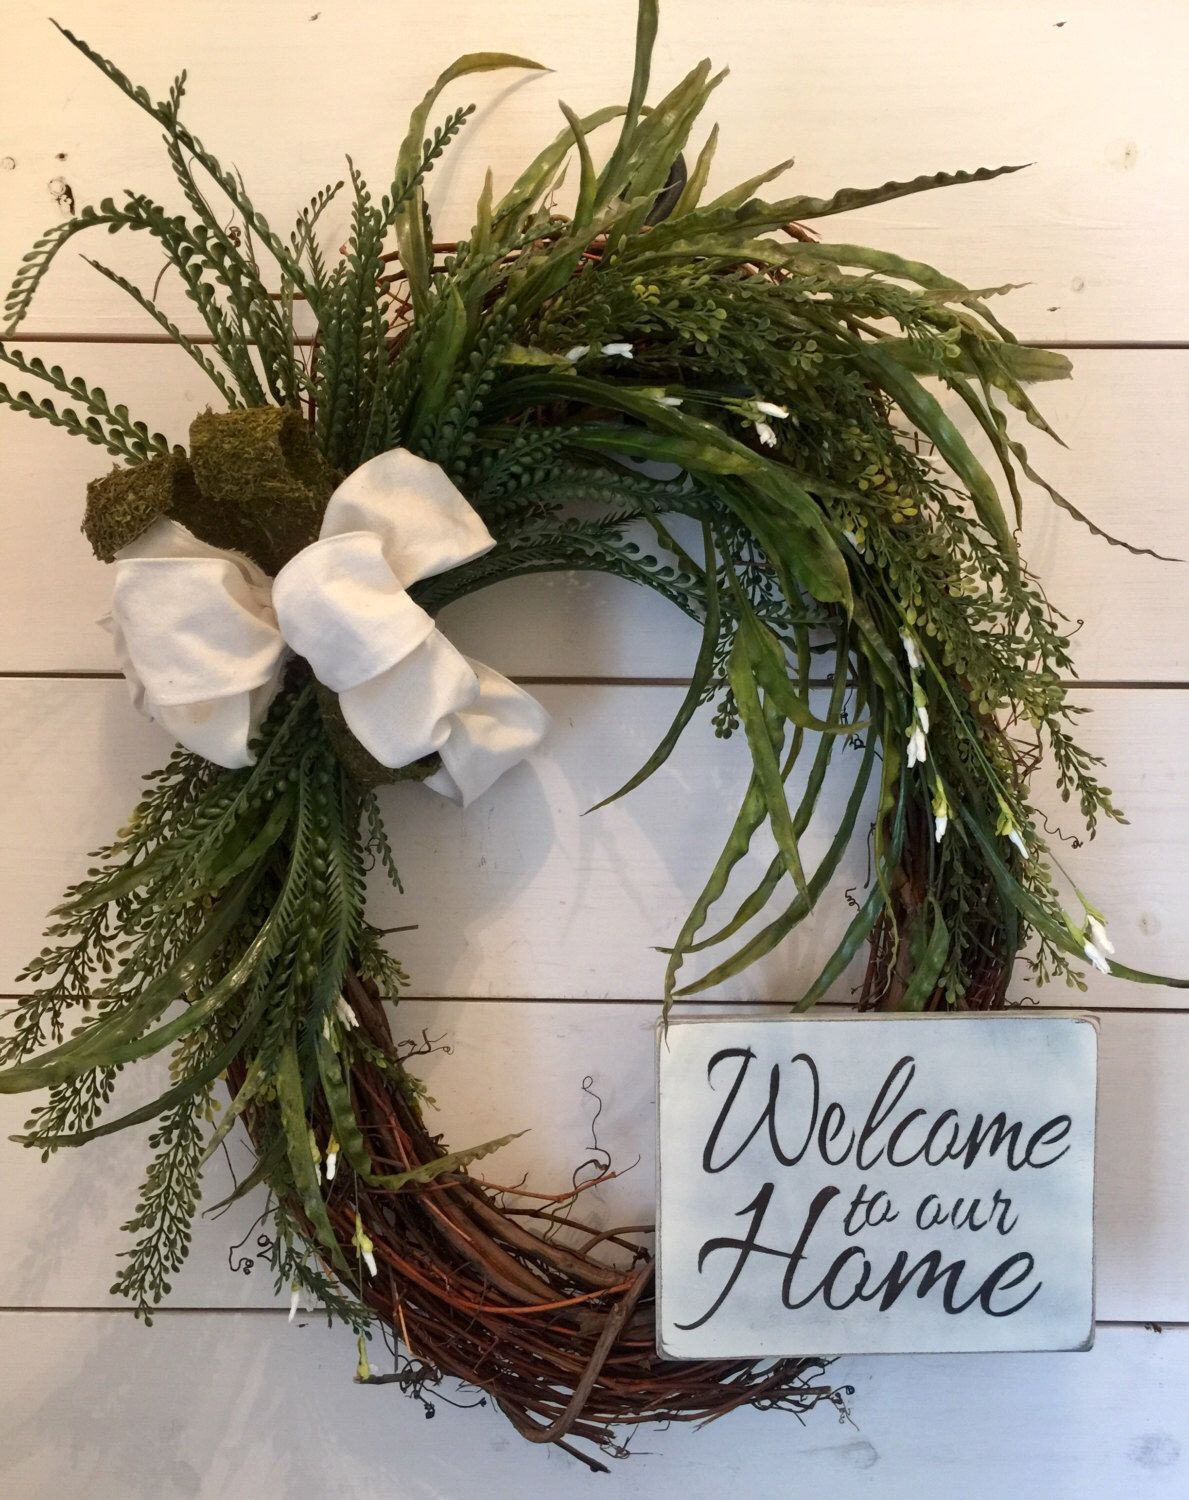 Extra Large Oval Wreath Greenery Door Wreath Farmhouse Decor Welcome Sign Welcome Wreath Wood Sign Distresse With Images Greenery Wreath Door Wreaths Welcome Wreath